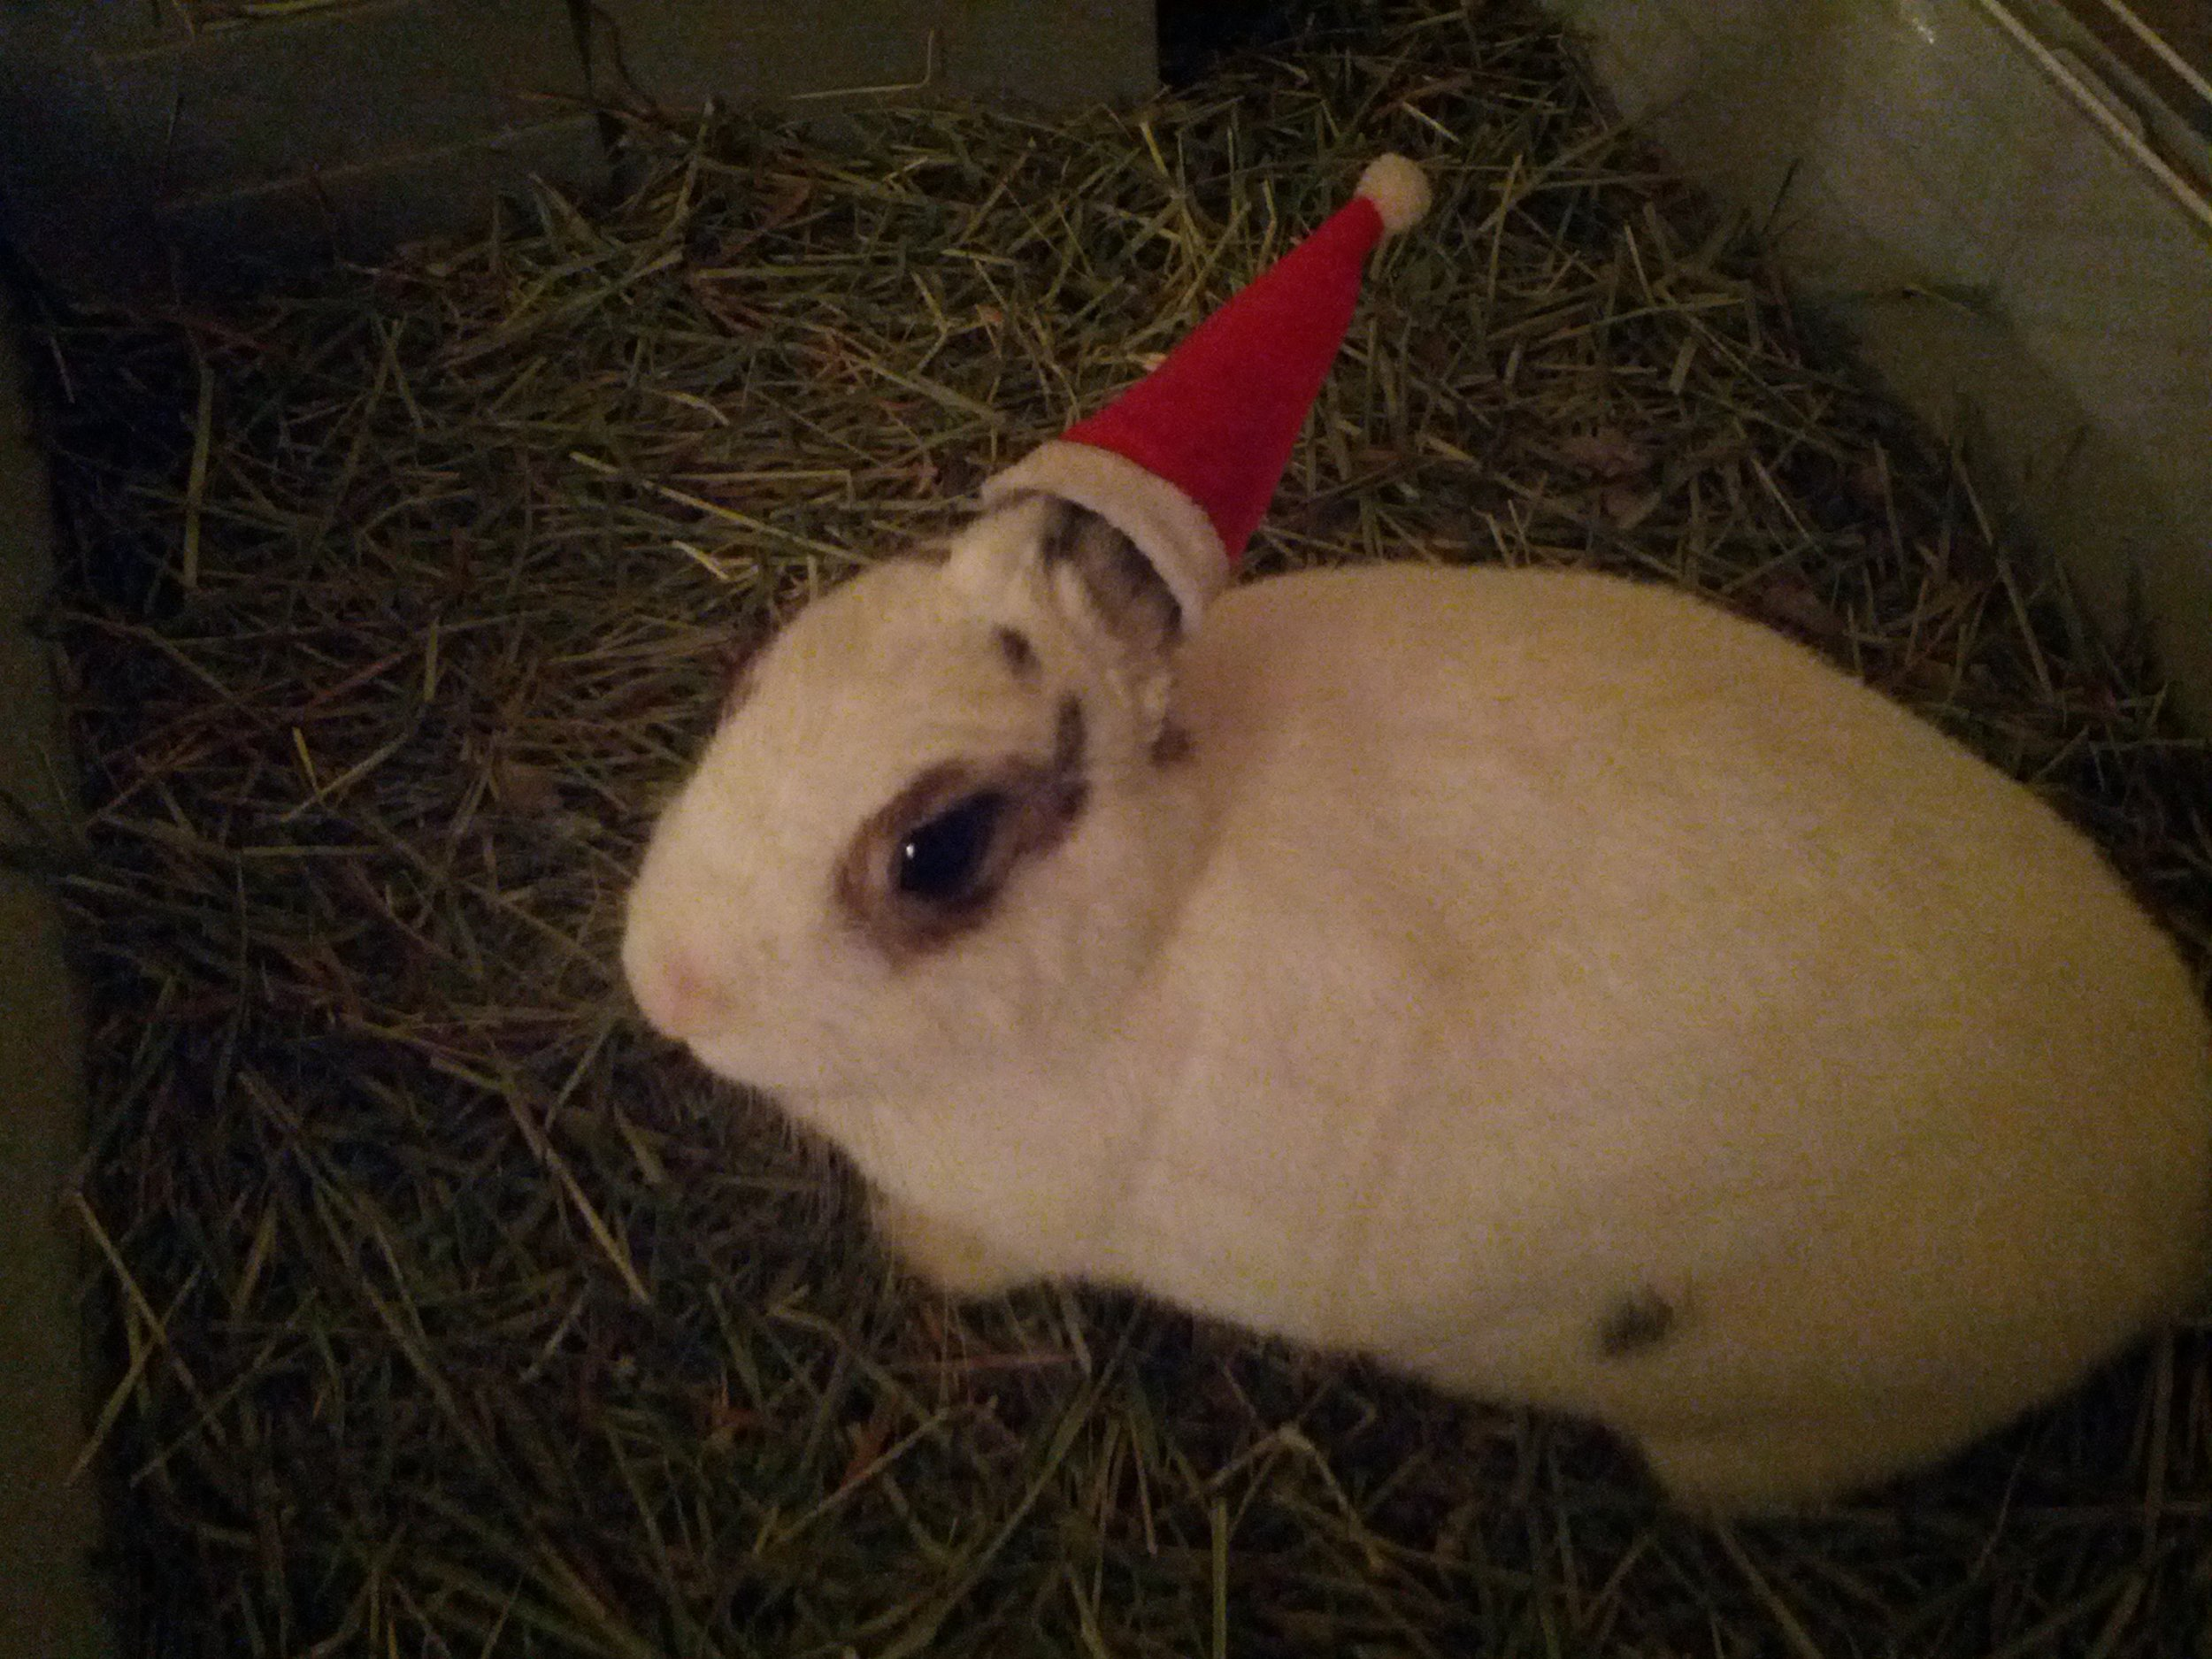 The Daily Bunny's Christmas 2013 Mega-Post 3.1